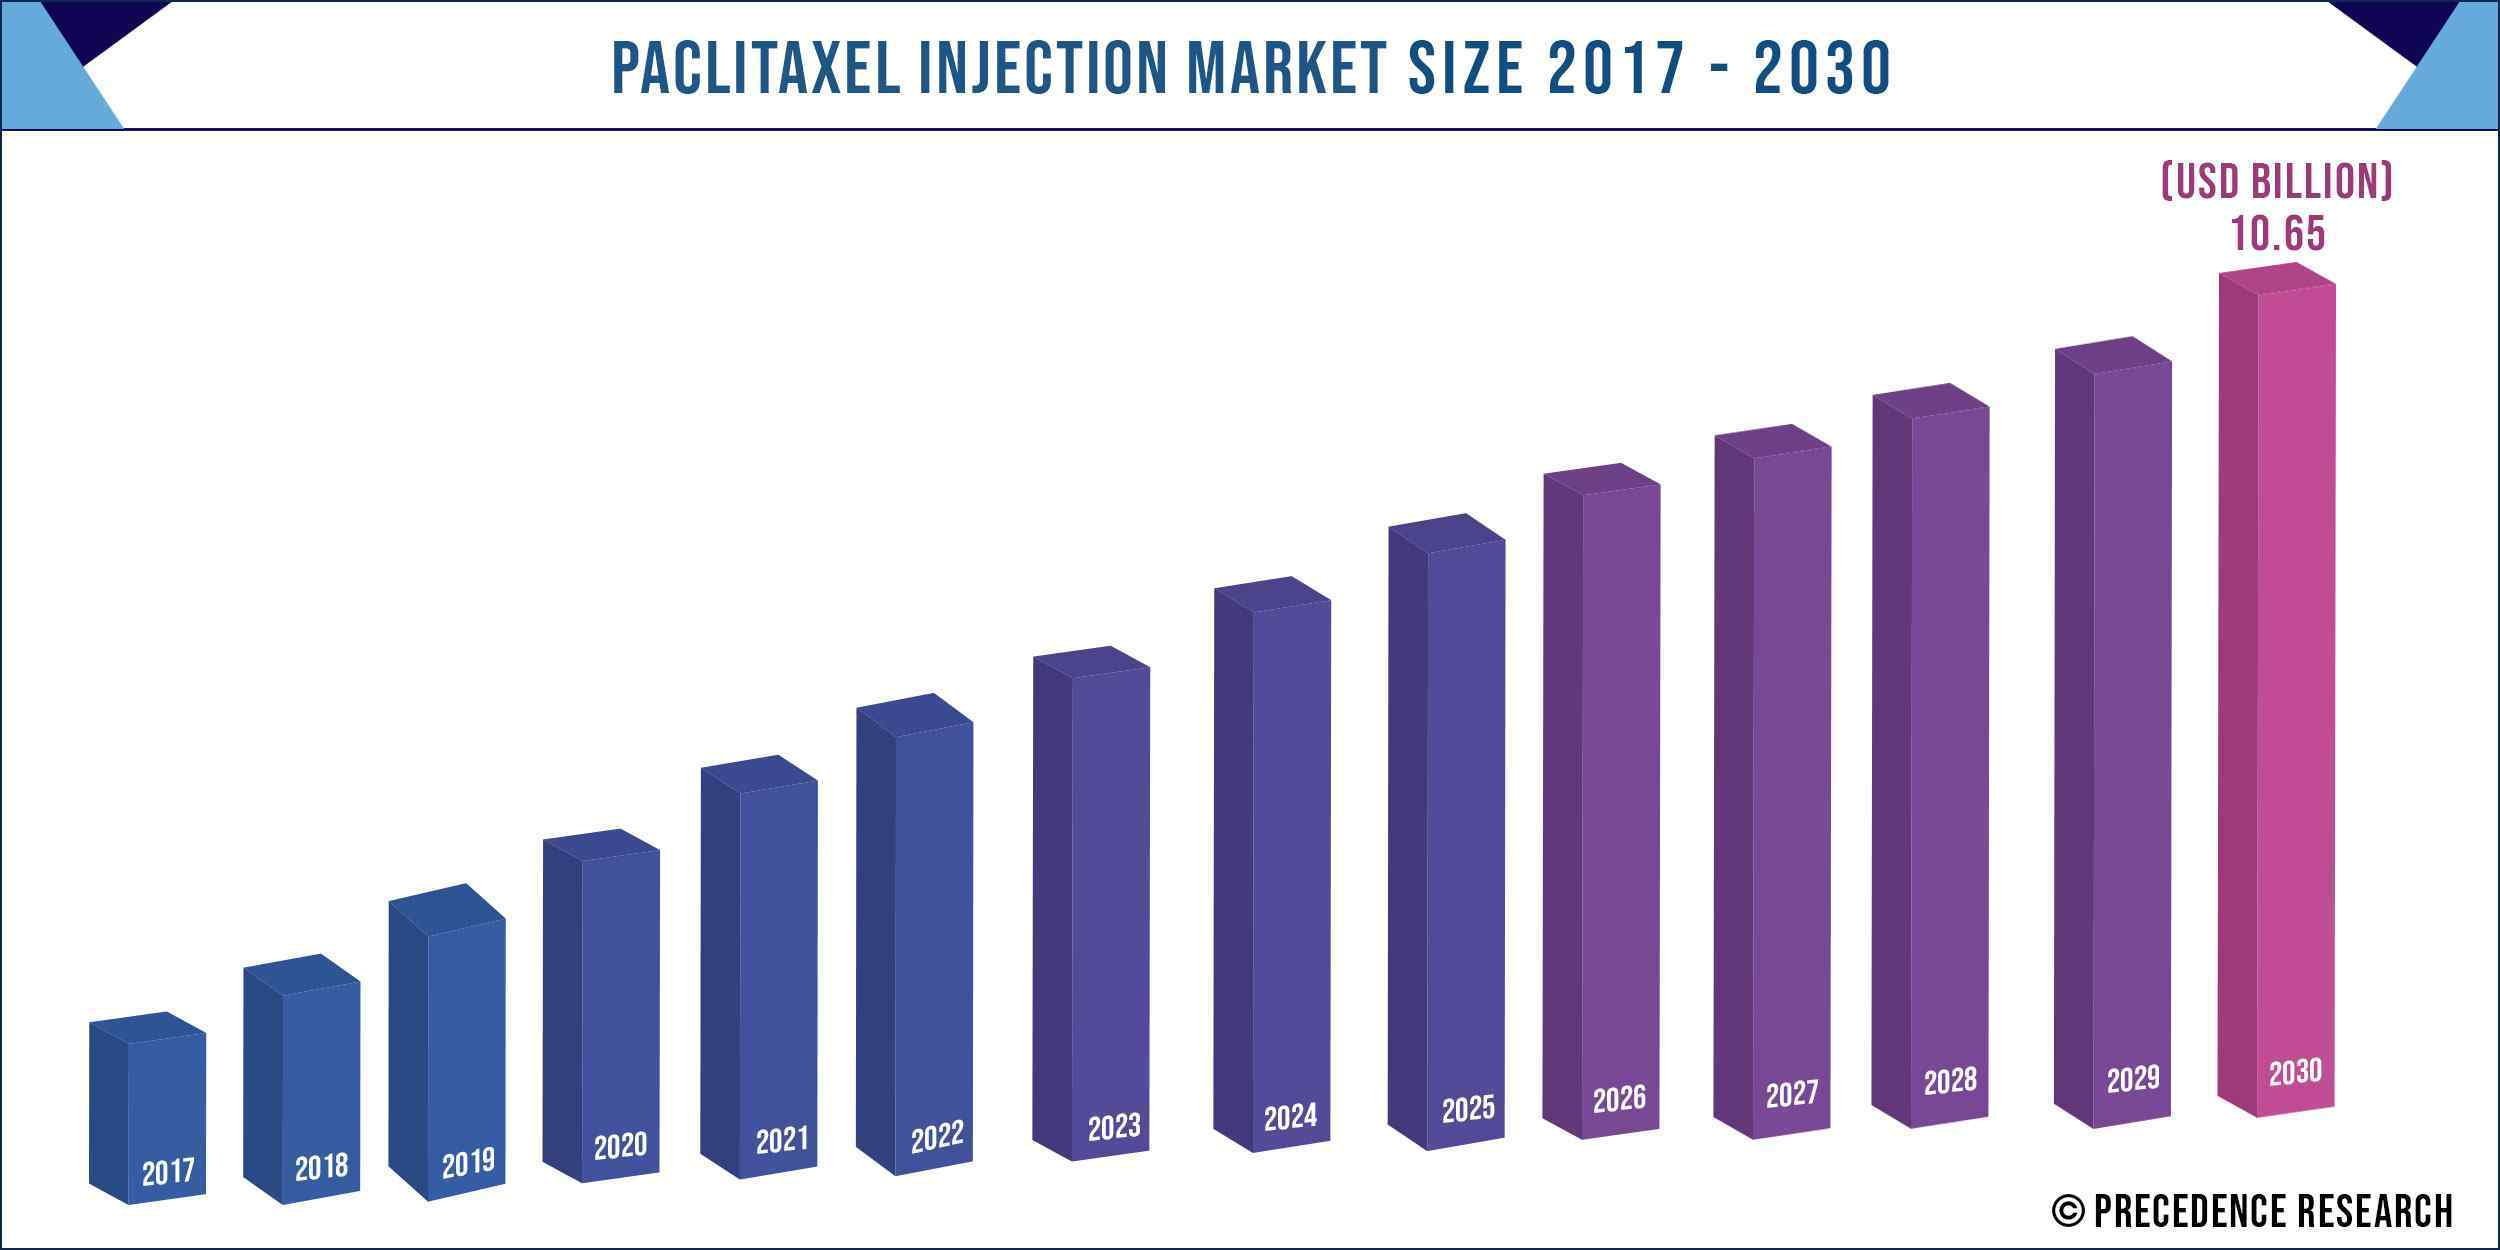 Paclitaxel Injection Market Size 2017-2030